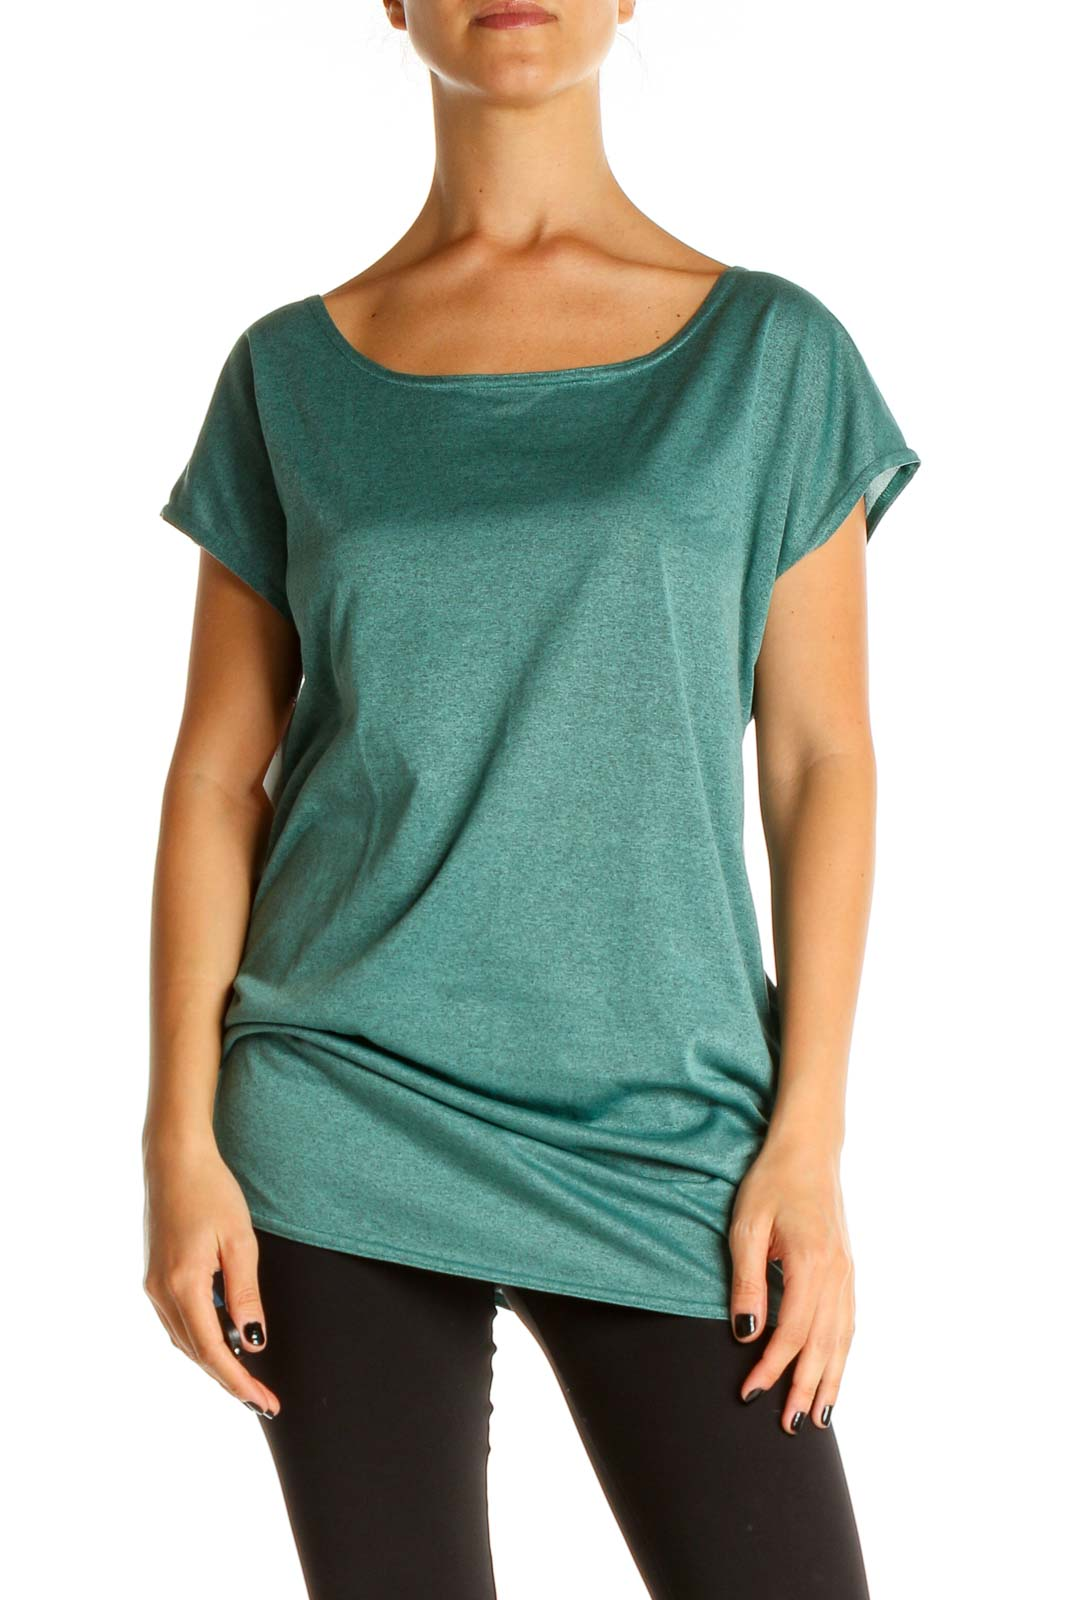 Green Solid Activewear T-Shirt Front